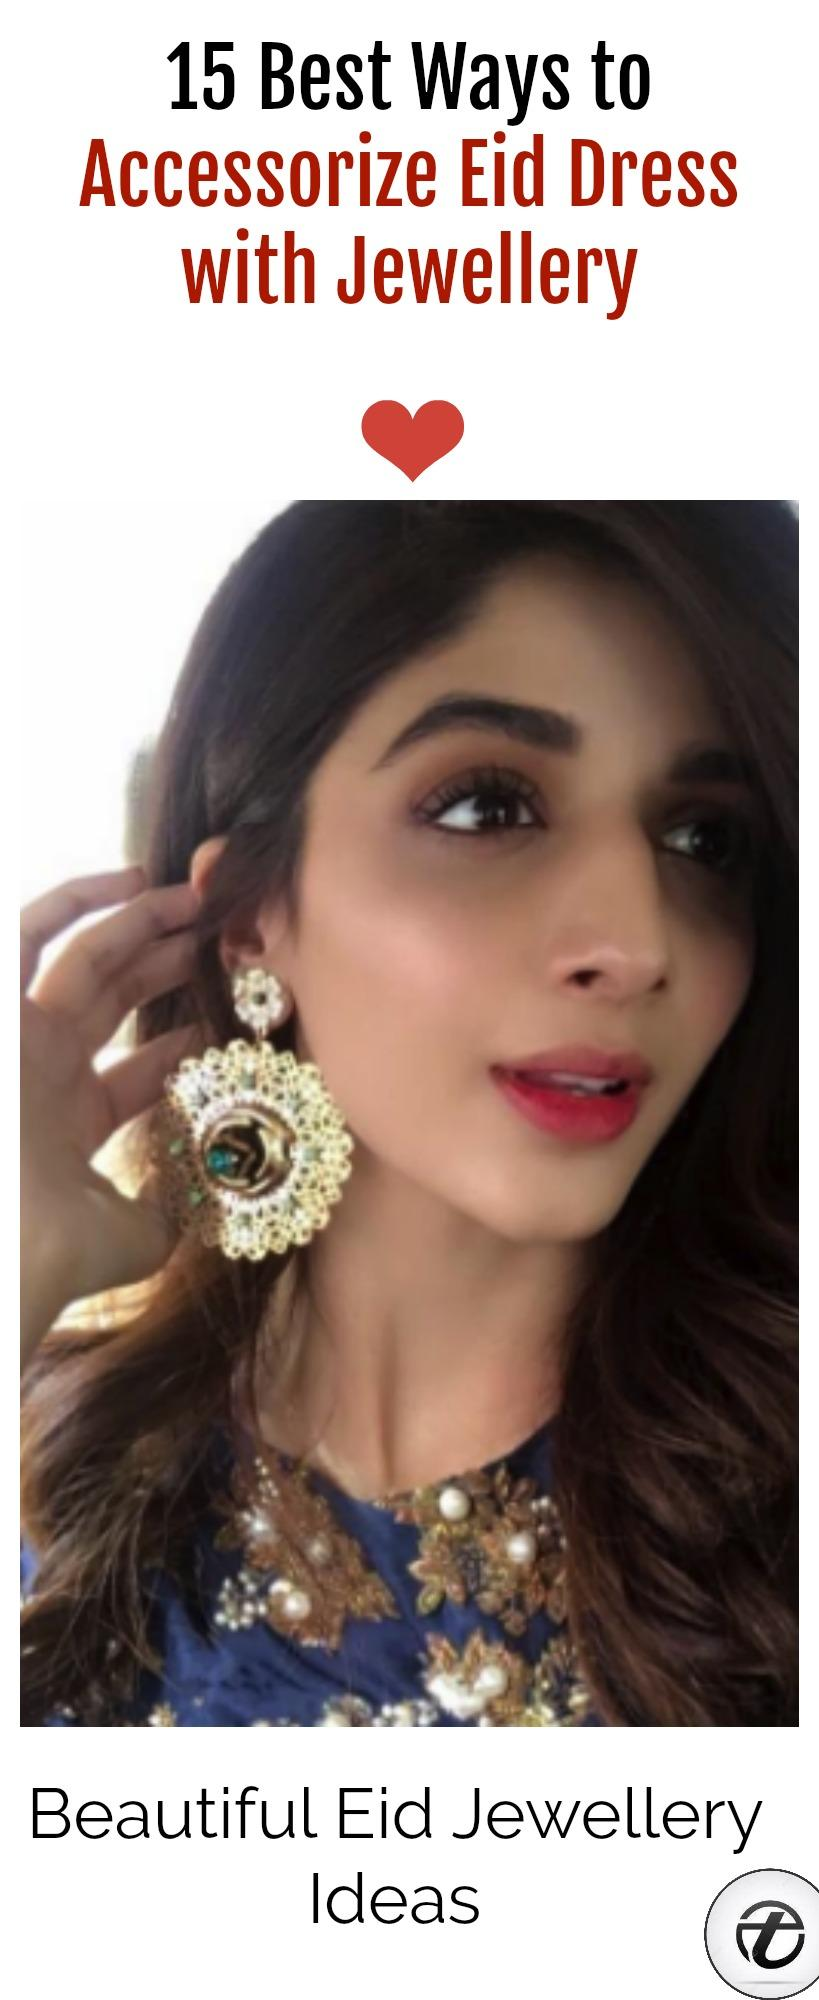 eid-jewellery-ideas-2 Eid Jewellery-15 Ways to Accessorize Eid Dress with Jewellery